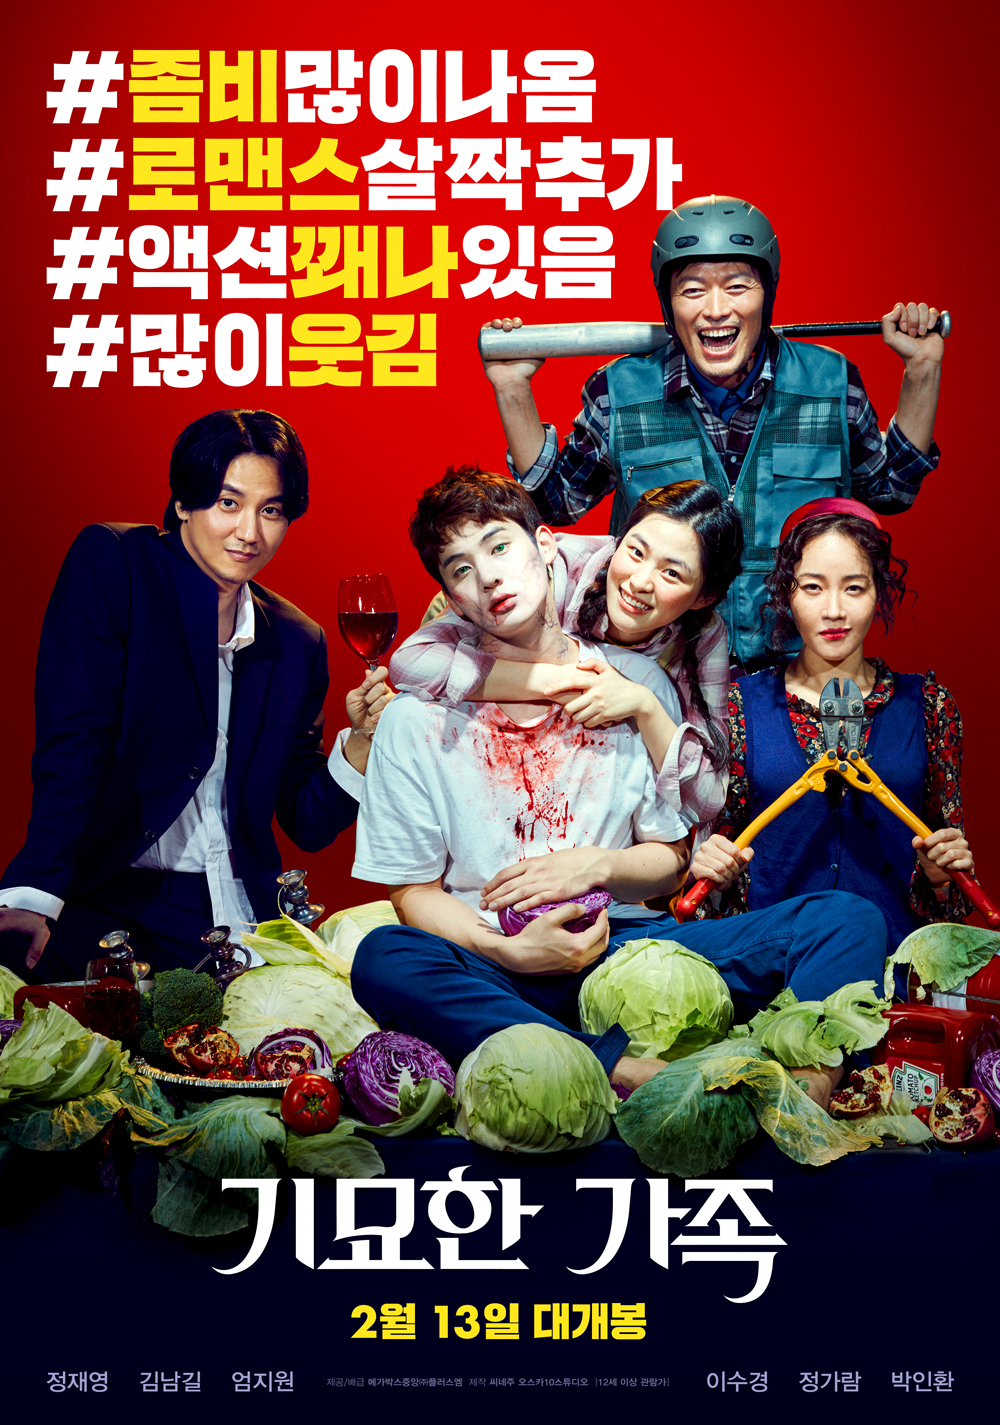 The Odd Family: Zombie On Sale (2019) Full Movie